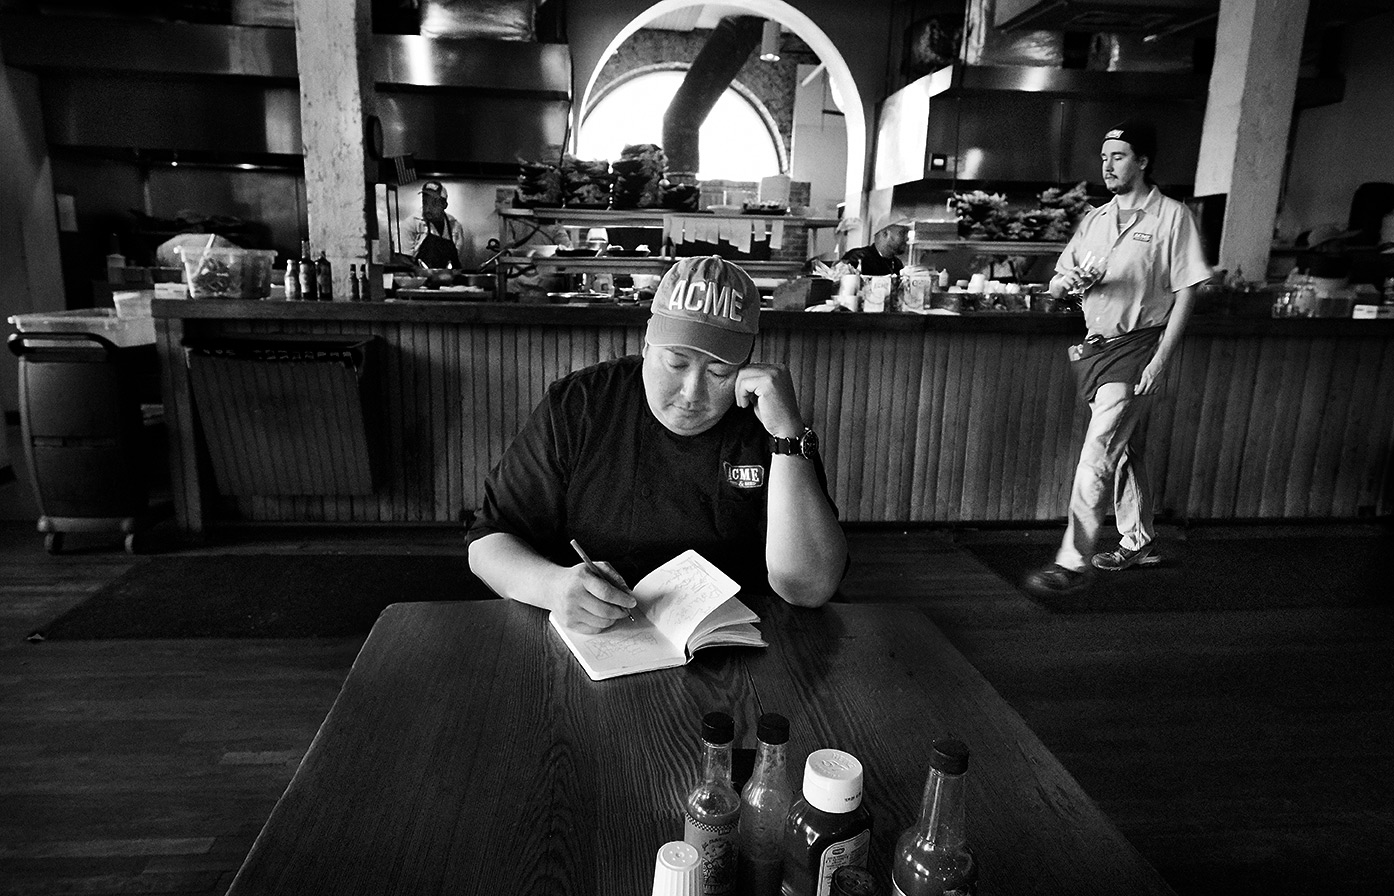 Chef Jeremy  portrait at ACME Feed and Seed Restaurant in Nashville